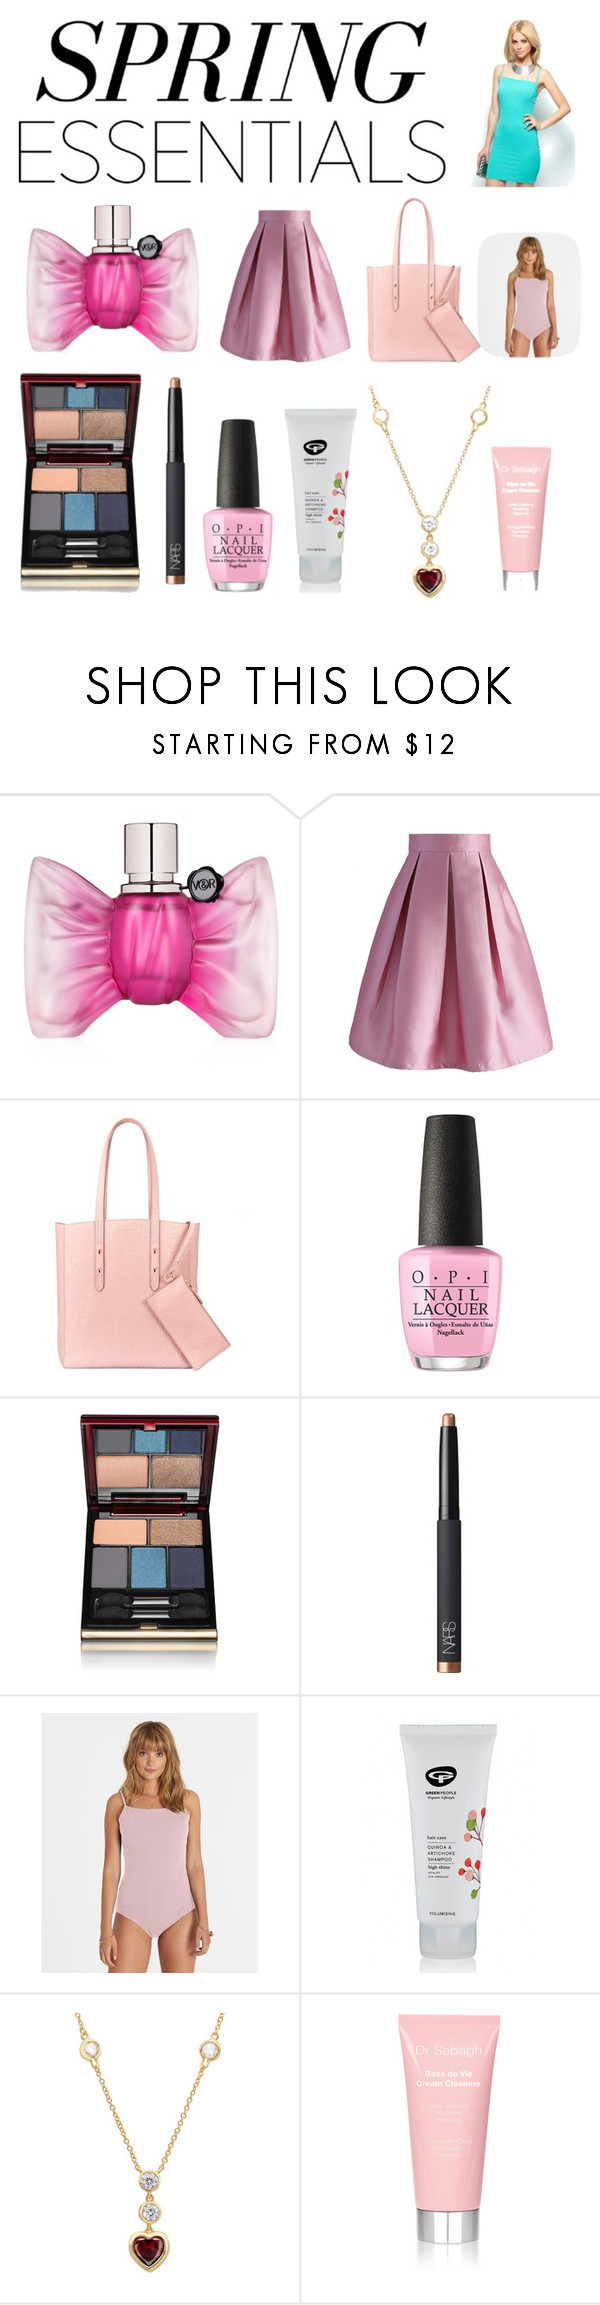 """""""Untitled #11"""" by kira-mcdonnell ❤ liked on Polyvore featuring beauty, Viktor & Rolf, Chicwish, Aspinal of London, OPI, Kevyn Aucoin, NARS Cosmetics, Billabong, Sterling Essentials and Dr. Sebagh"""